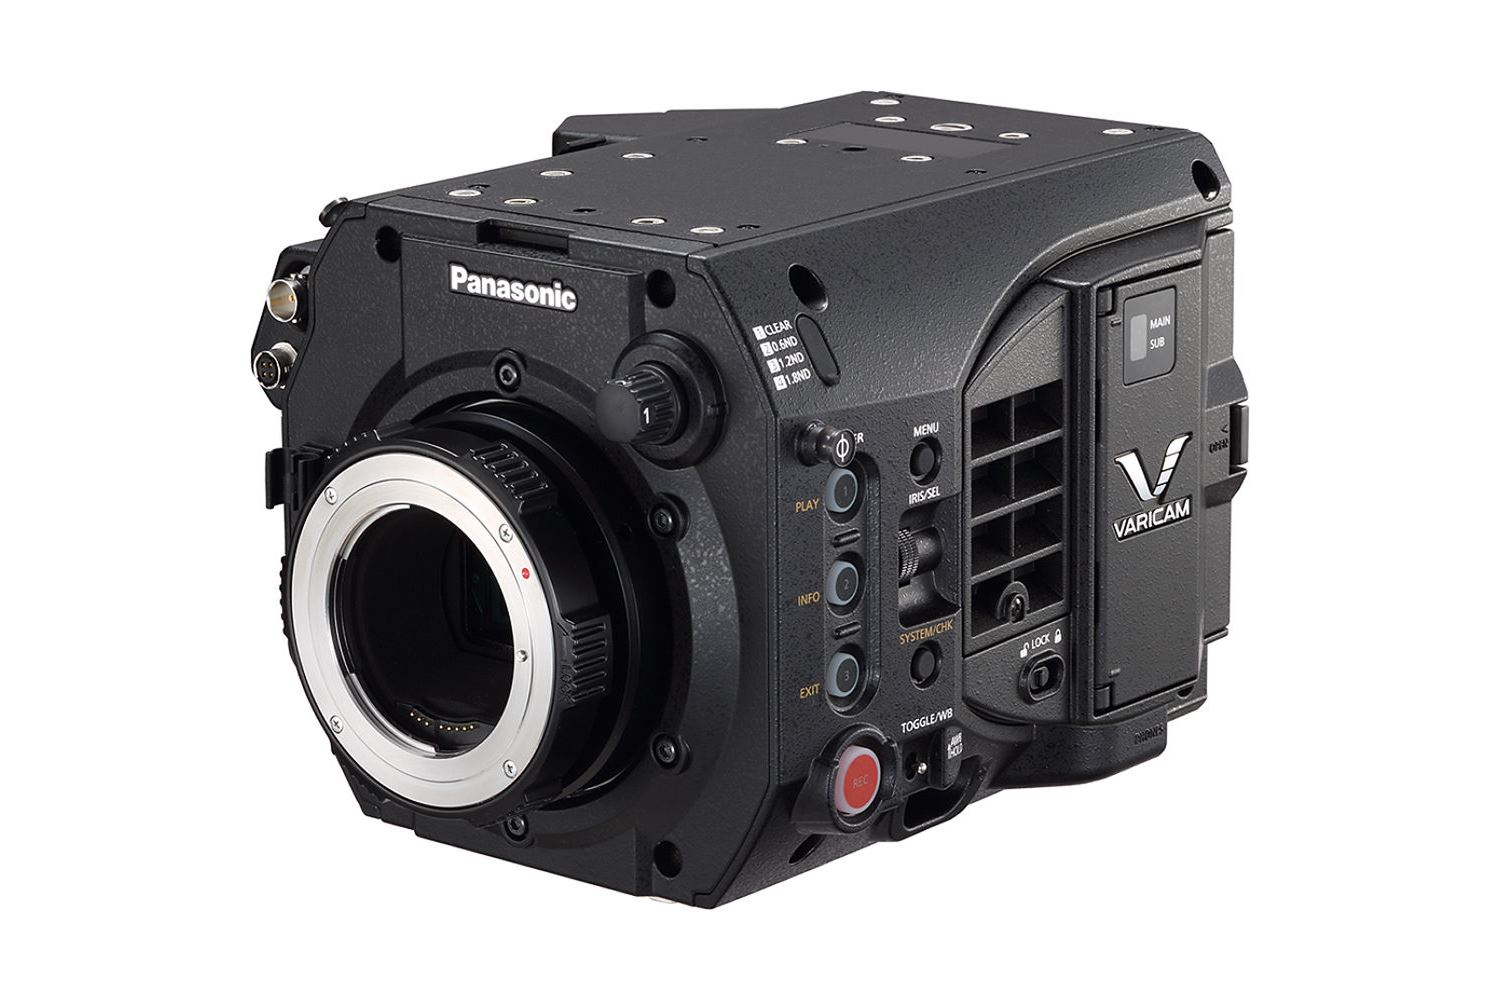 Panasonic Cinema VariCam LT 4K S35 - 250 EUR/day, 800 EUR/week